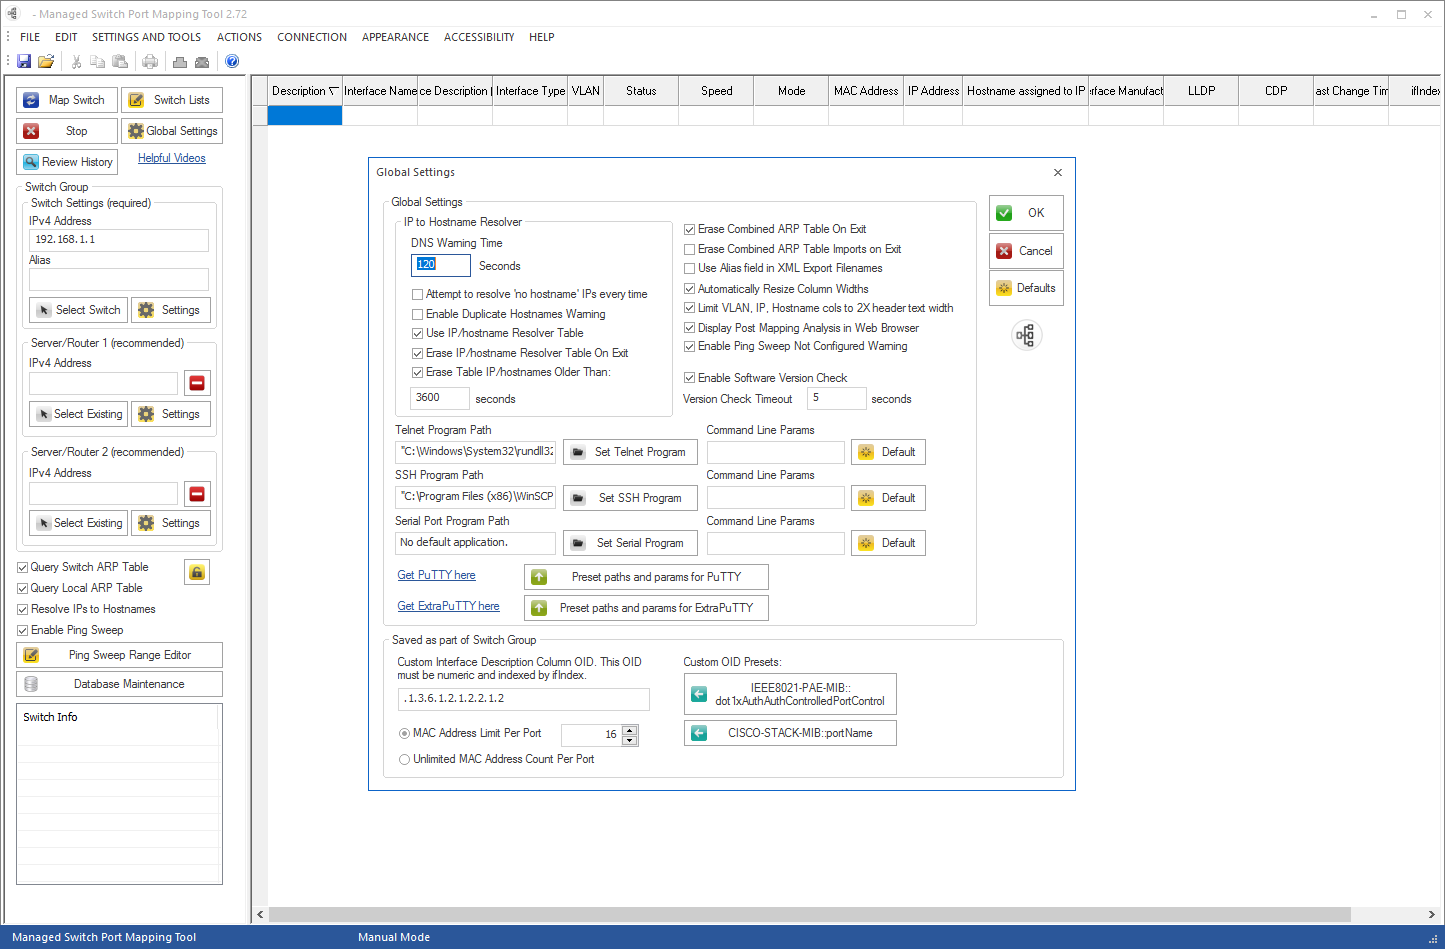 Getting To Know Your Network With Managed Switch Port Mapping Tool - Windows network mapping tool